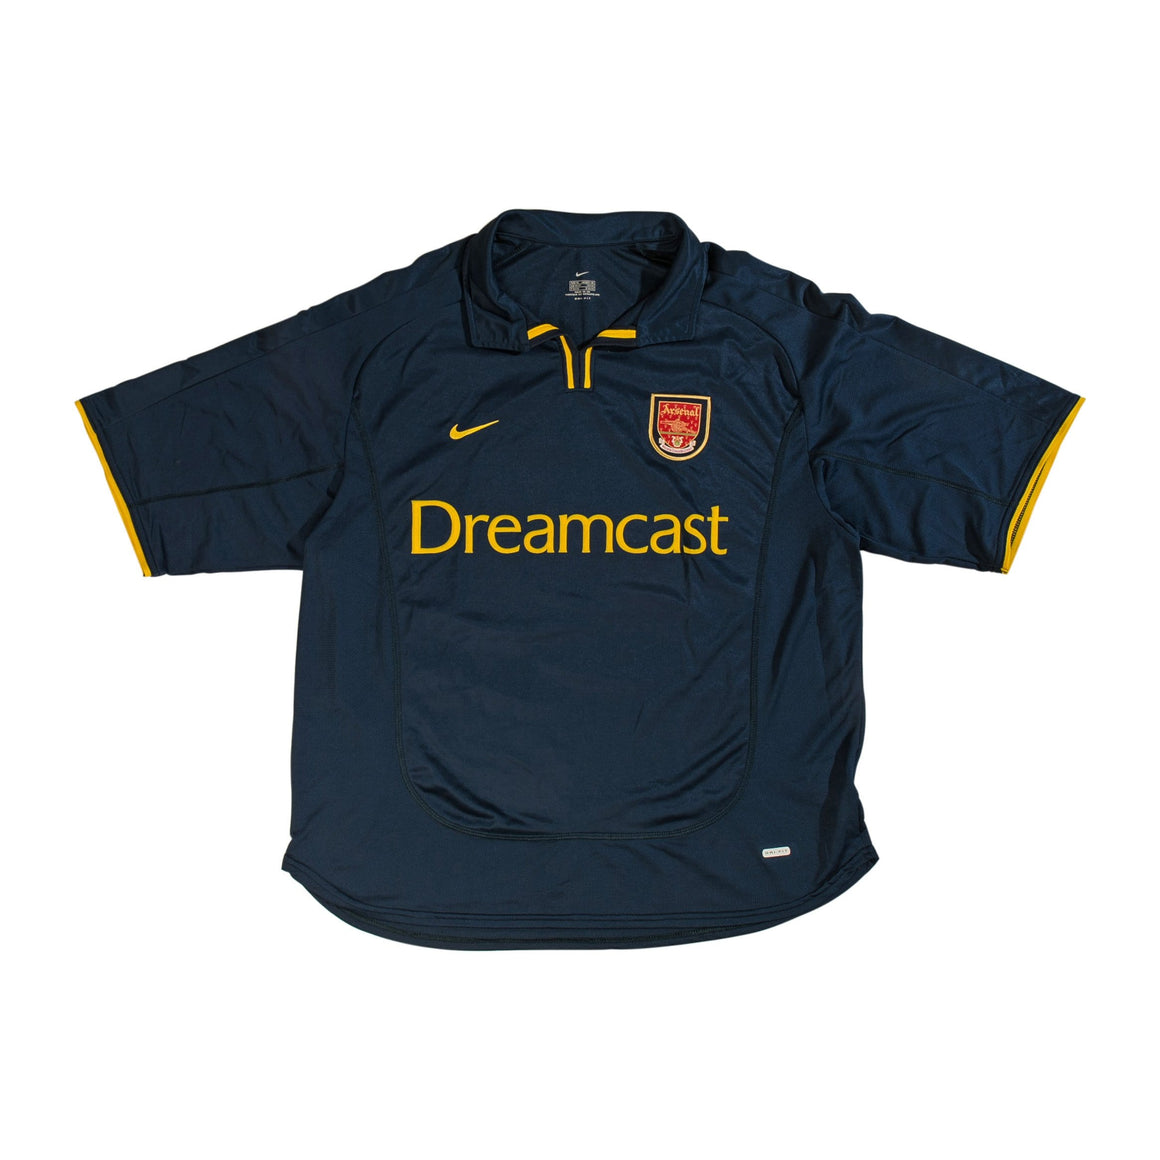 Football Shirt Collective 2000-02 Arsenal third shirt XL (Mint)